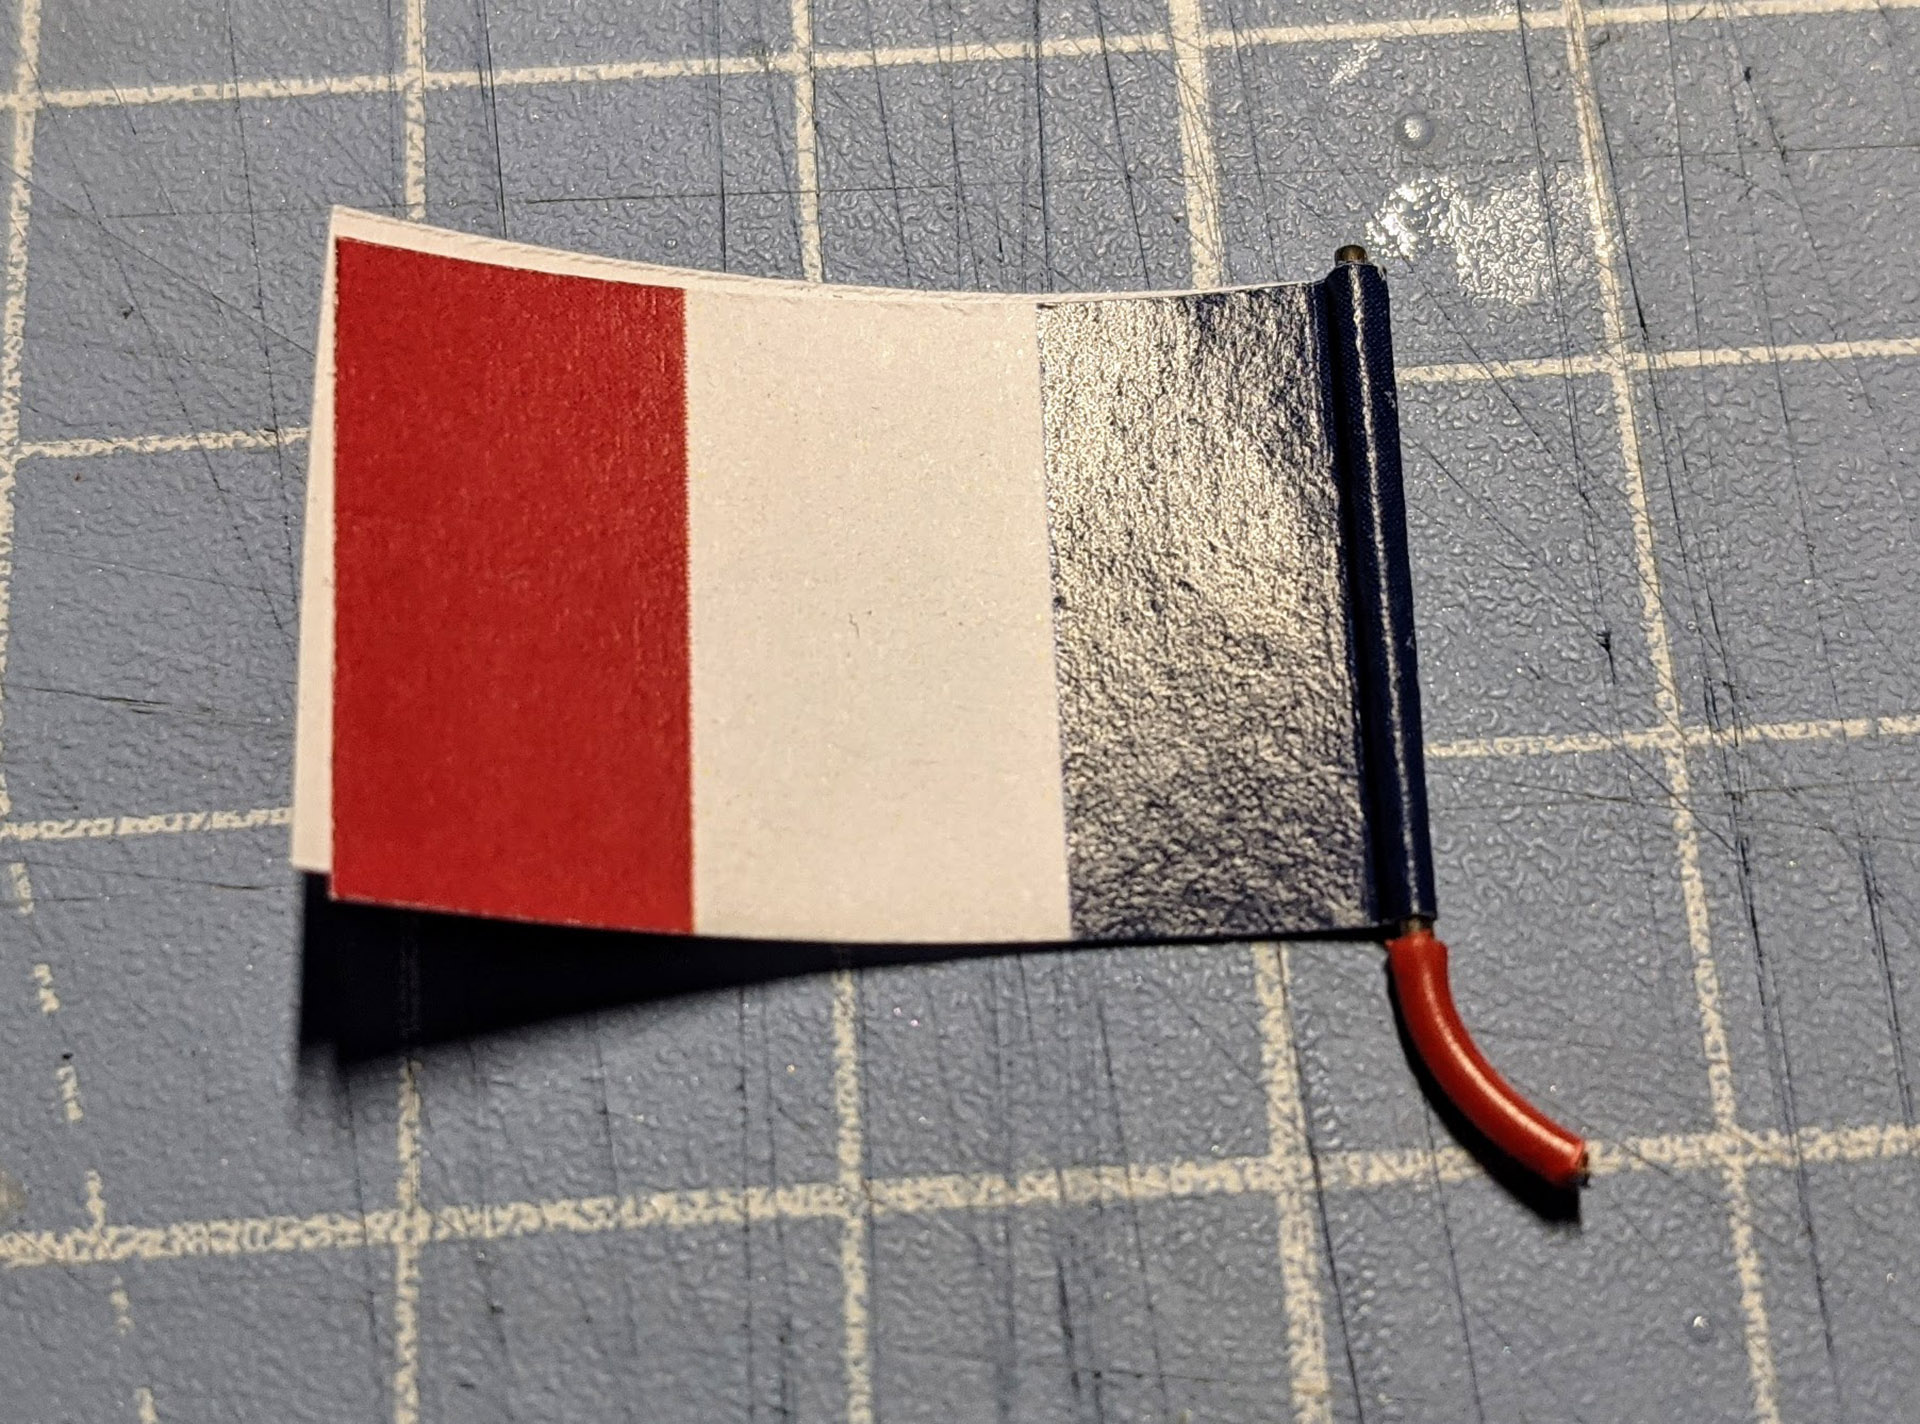 This is a very bad example of the flag not lining up perfectly. To fix this trip the flag until the edges match.